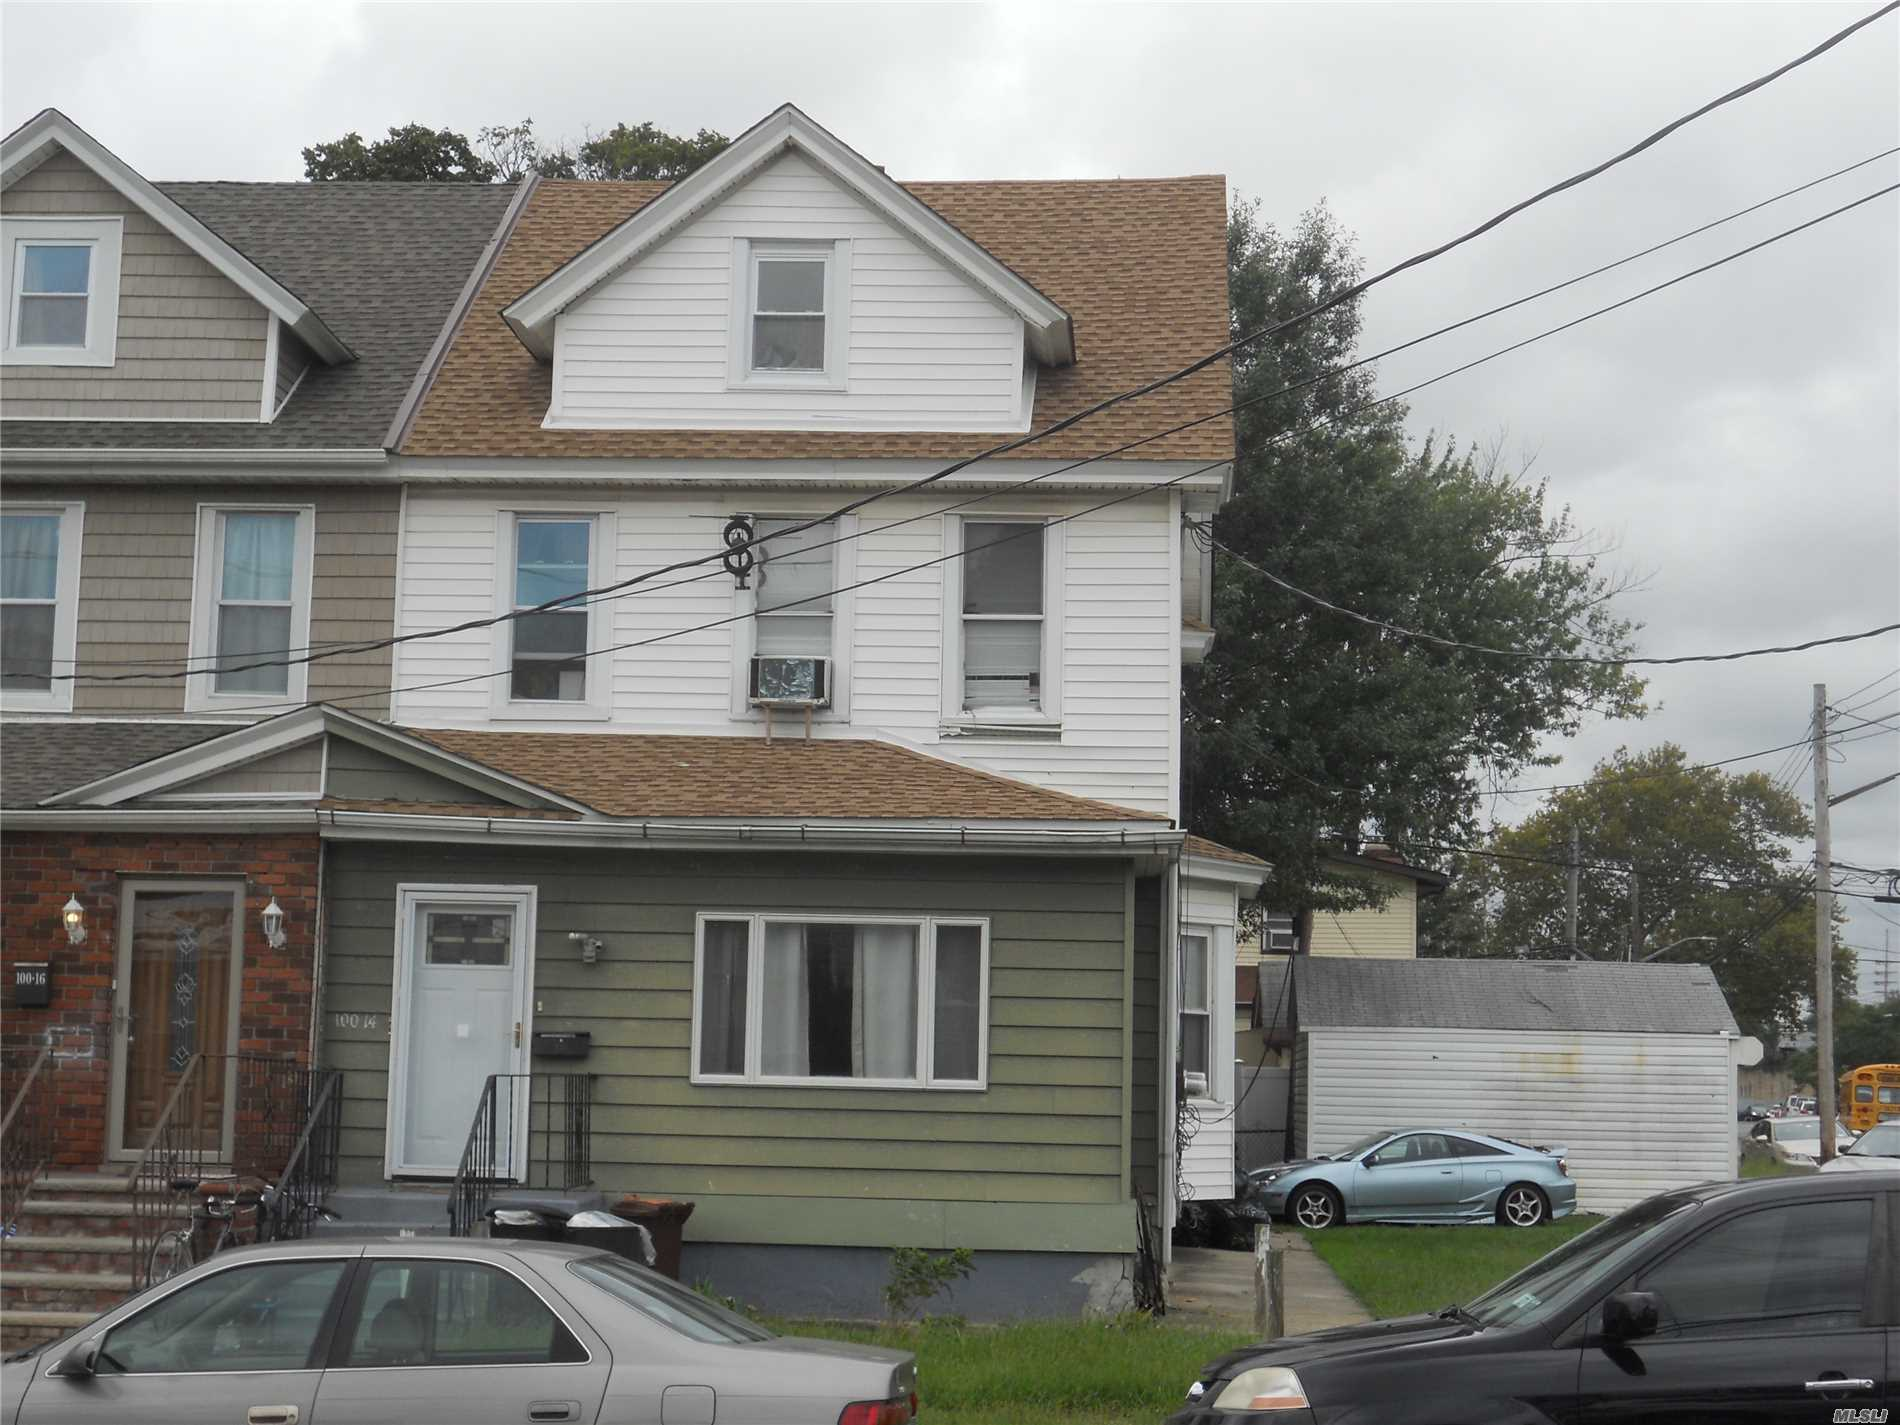 One Of A Kind Semi-Detached 2-Family House With Additional Vacant Lot (Possibly Buildable) Sold Together. House Lot Street Address Is 100-14 & Vacant Lot Is 100-12 With 2-Car Garage. Lot Size On Each 25X96. Zoned R3-2 (General Residential District). Full Unfinished Basement With Separate Outside Entrance. Near All With Easy Access To Lirr Trains, Cross Island Pkwy & Public Transportation. 2 Kitchens, 2 Baths, 4 Bedrooms Etc: